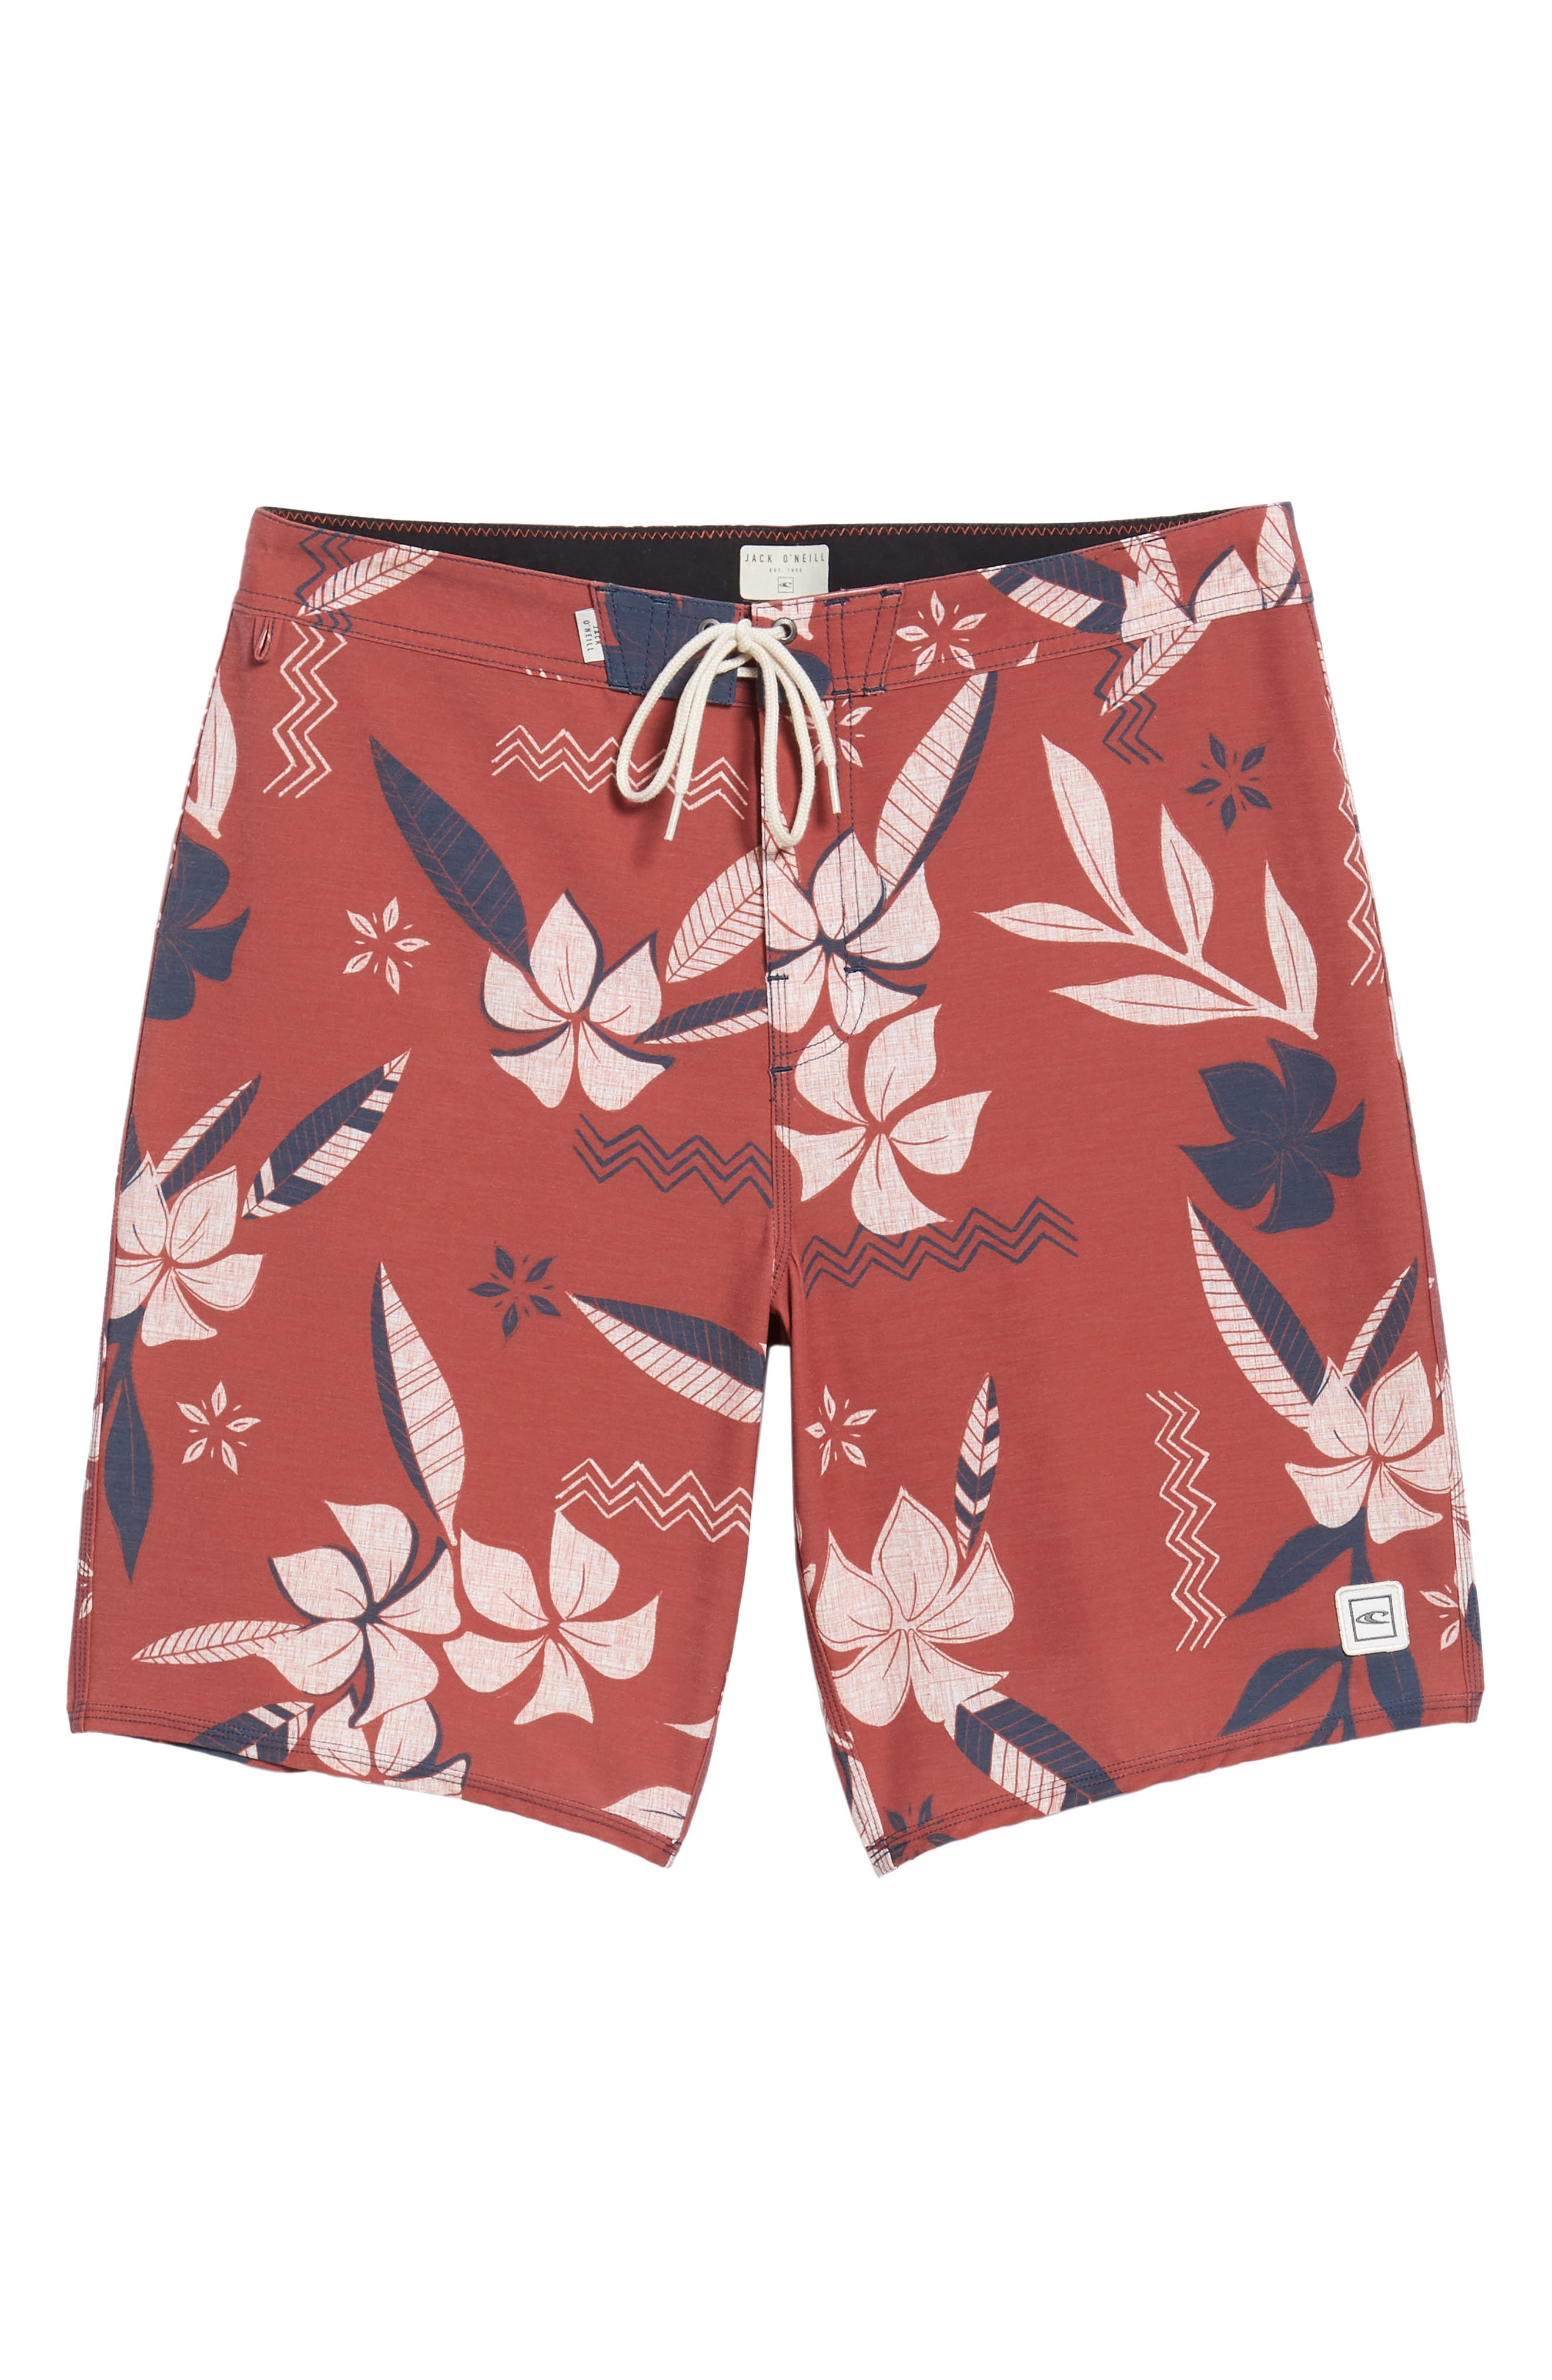 Maui Board Shorts,                             Alternate thumbnail 18, color,